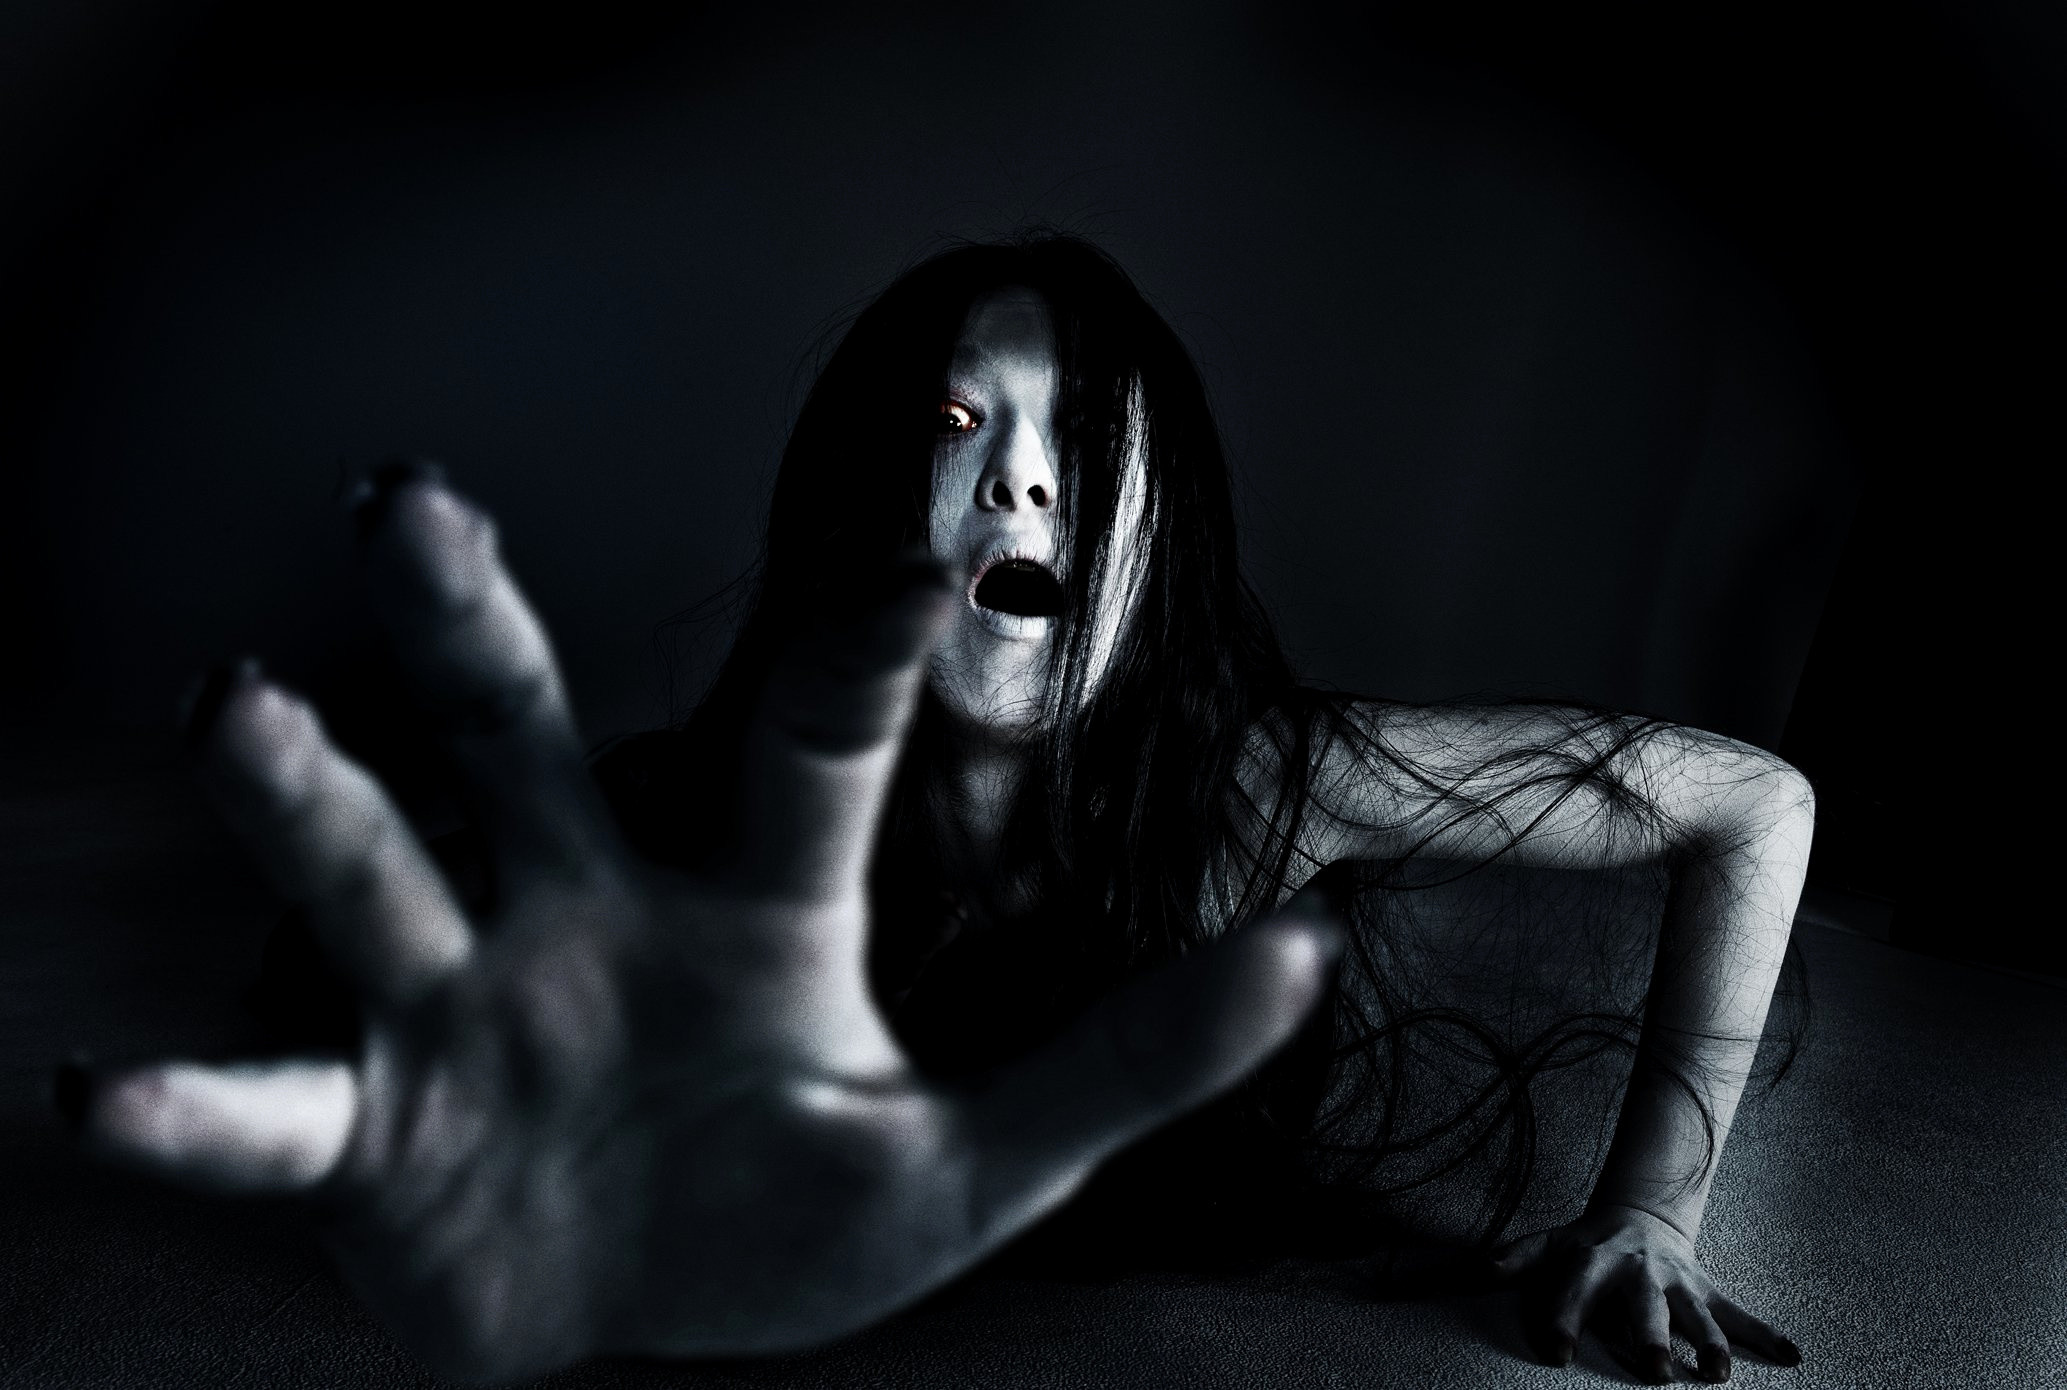 Res: 2067x1390, Scary Wallpapers Lovely Grudge Horror Mystery Thriller Dark Evil Demon  Ghost Ju On